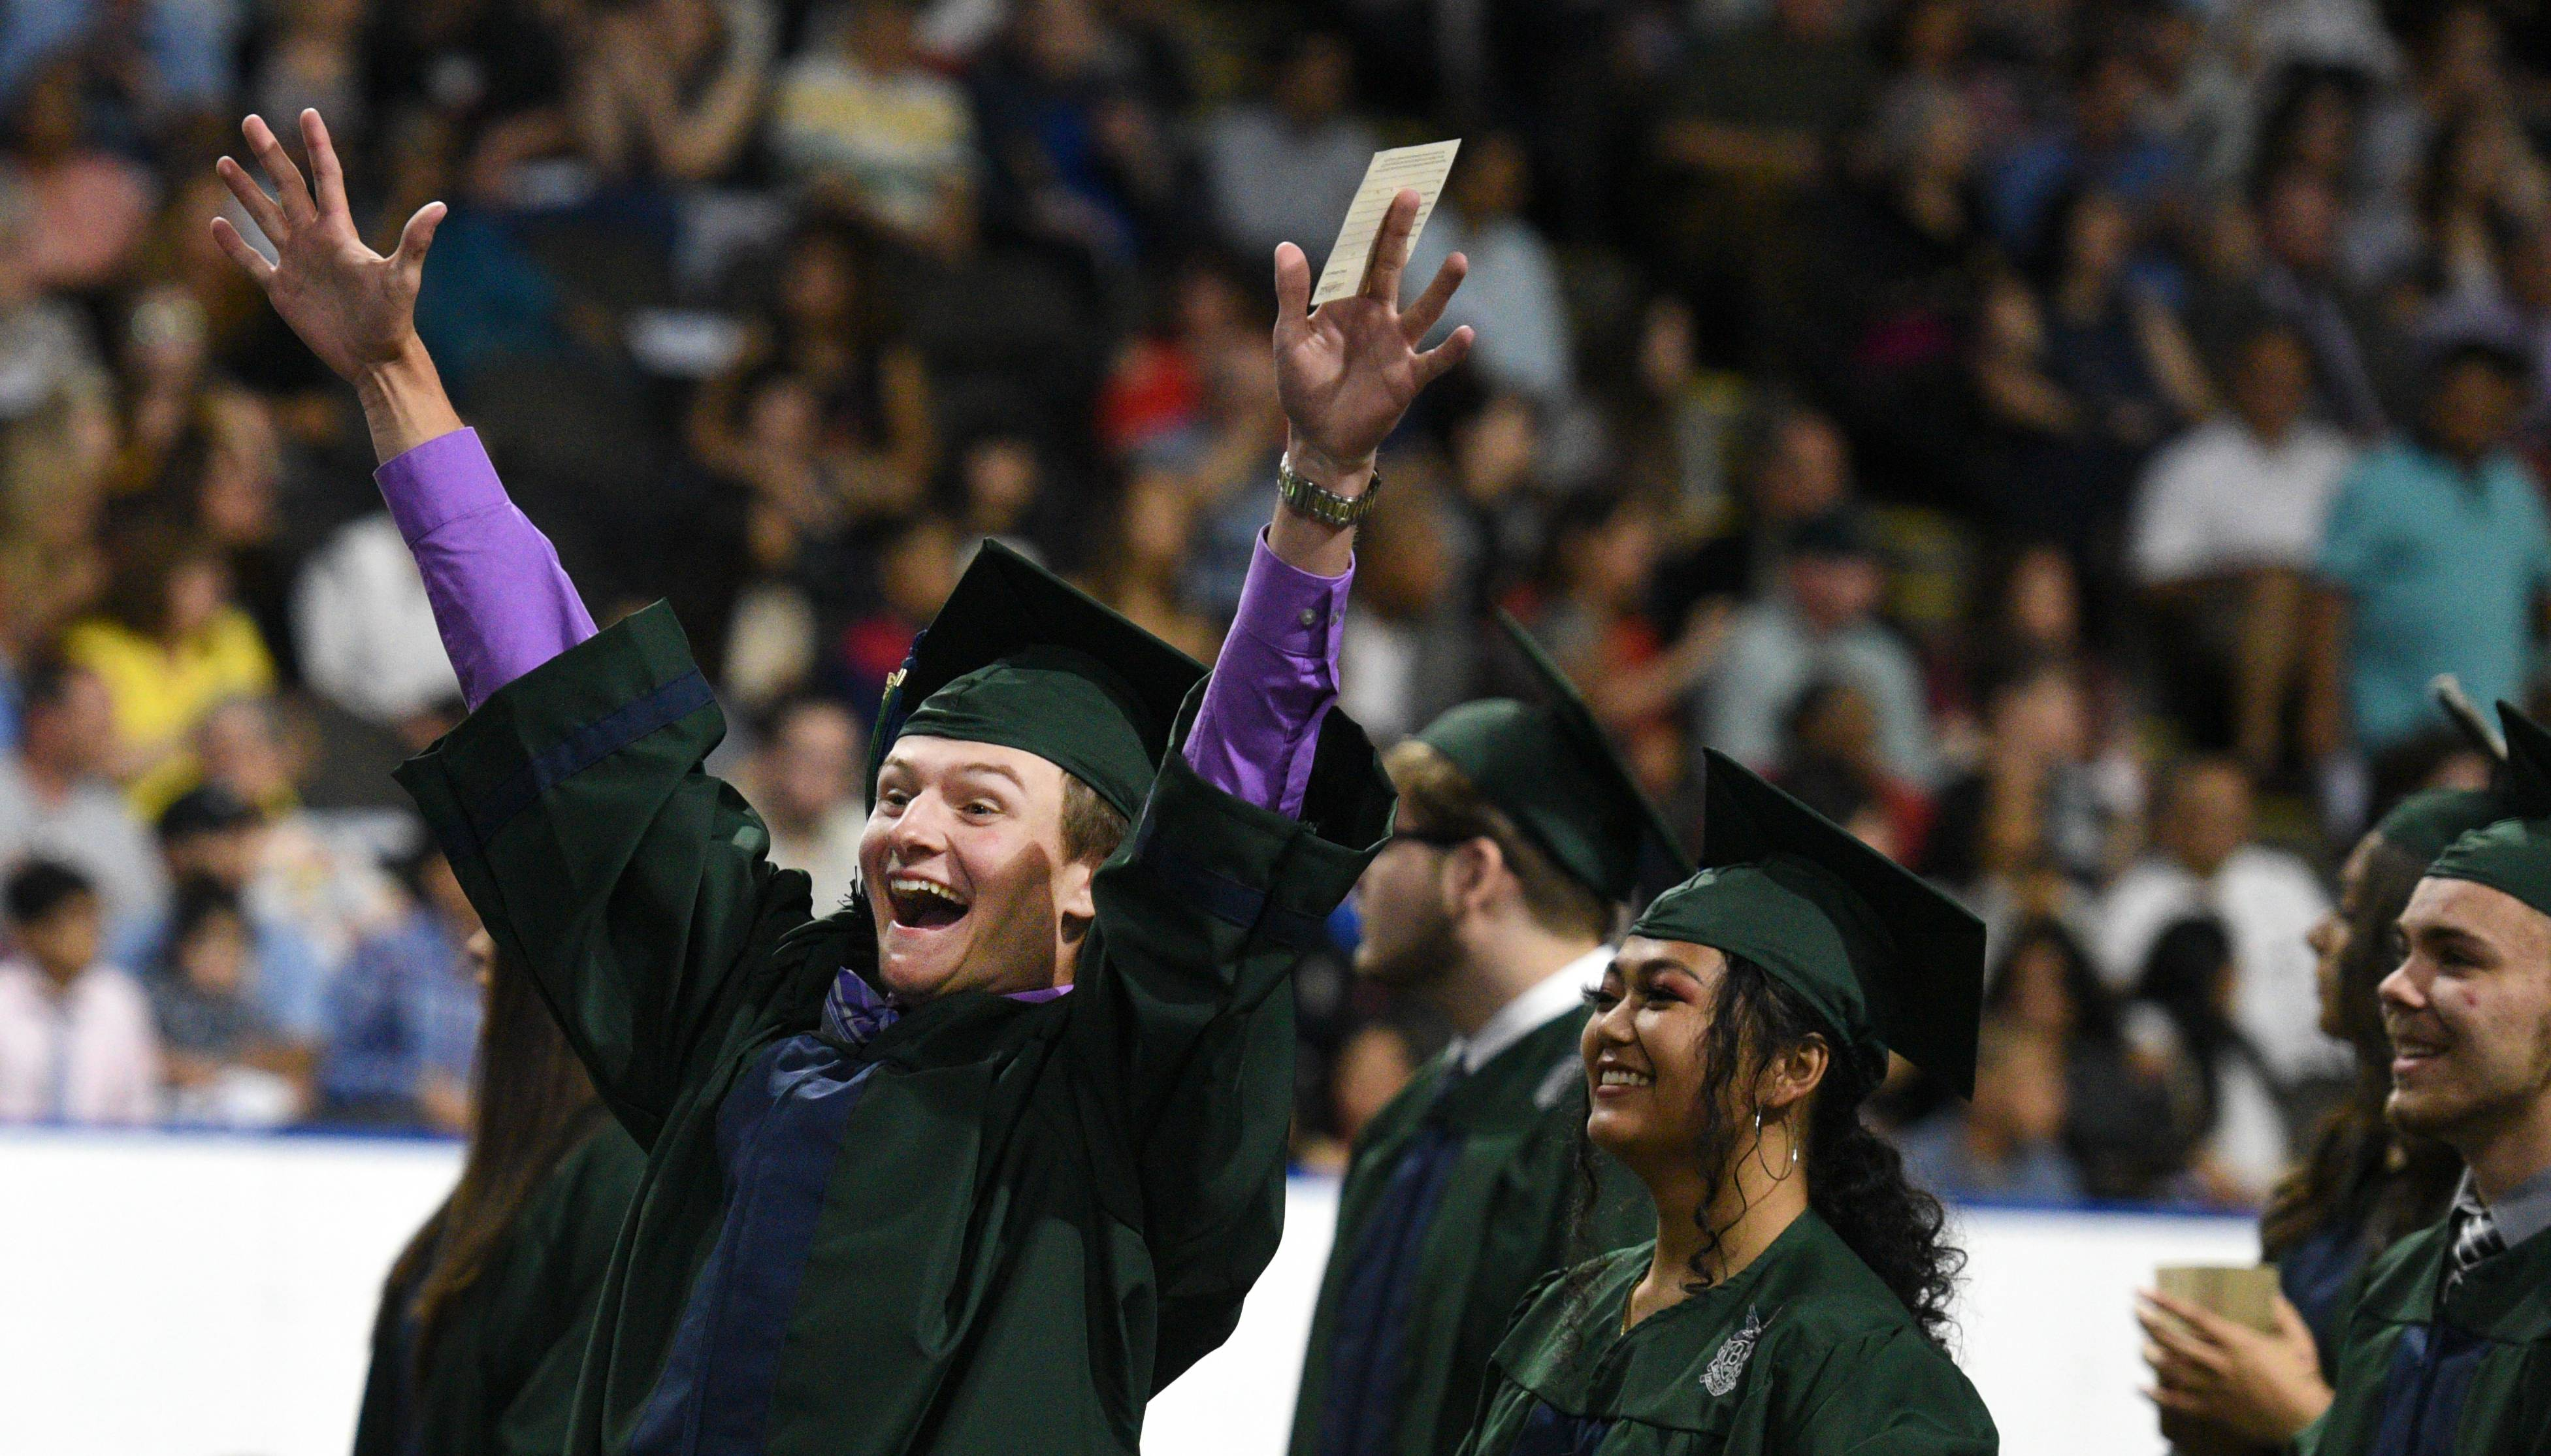 Justin Everson throws his arms up to acknowledge voices yelling at him from the crowd as the graduates process during the Bartlett High School graduation at the Sears Centre in Hoffman Estates on Saturday.